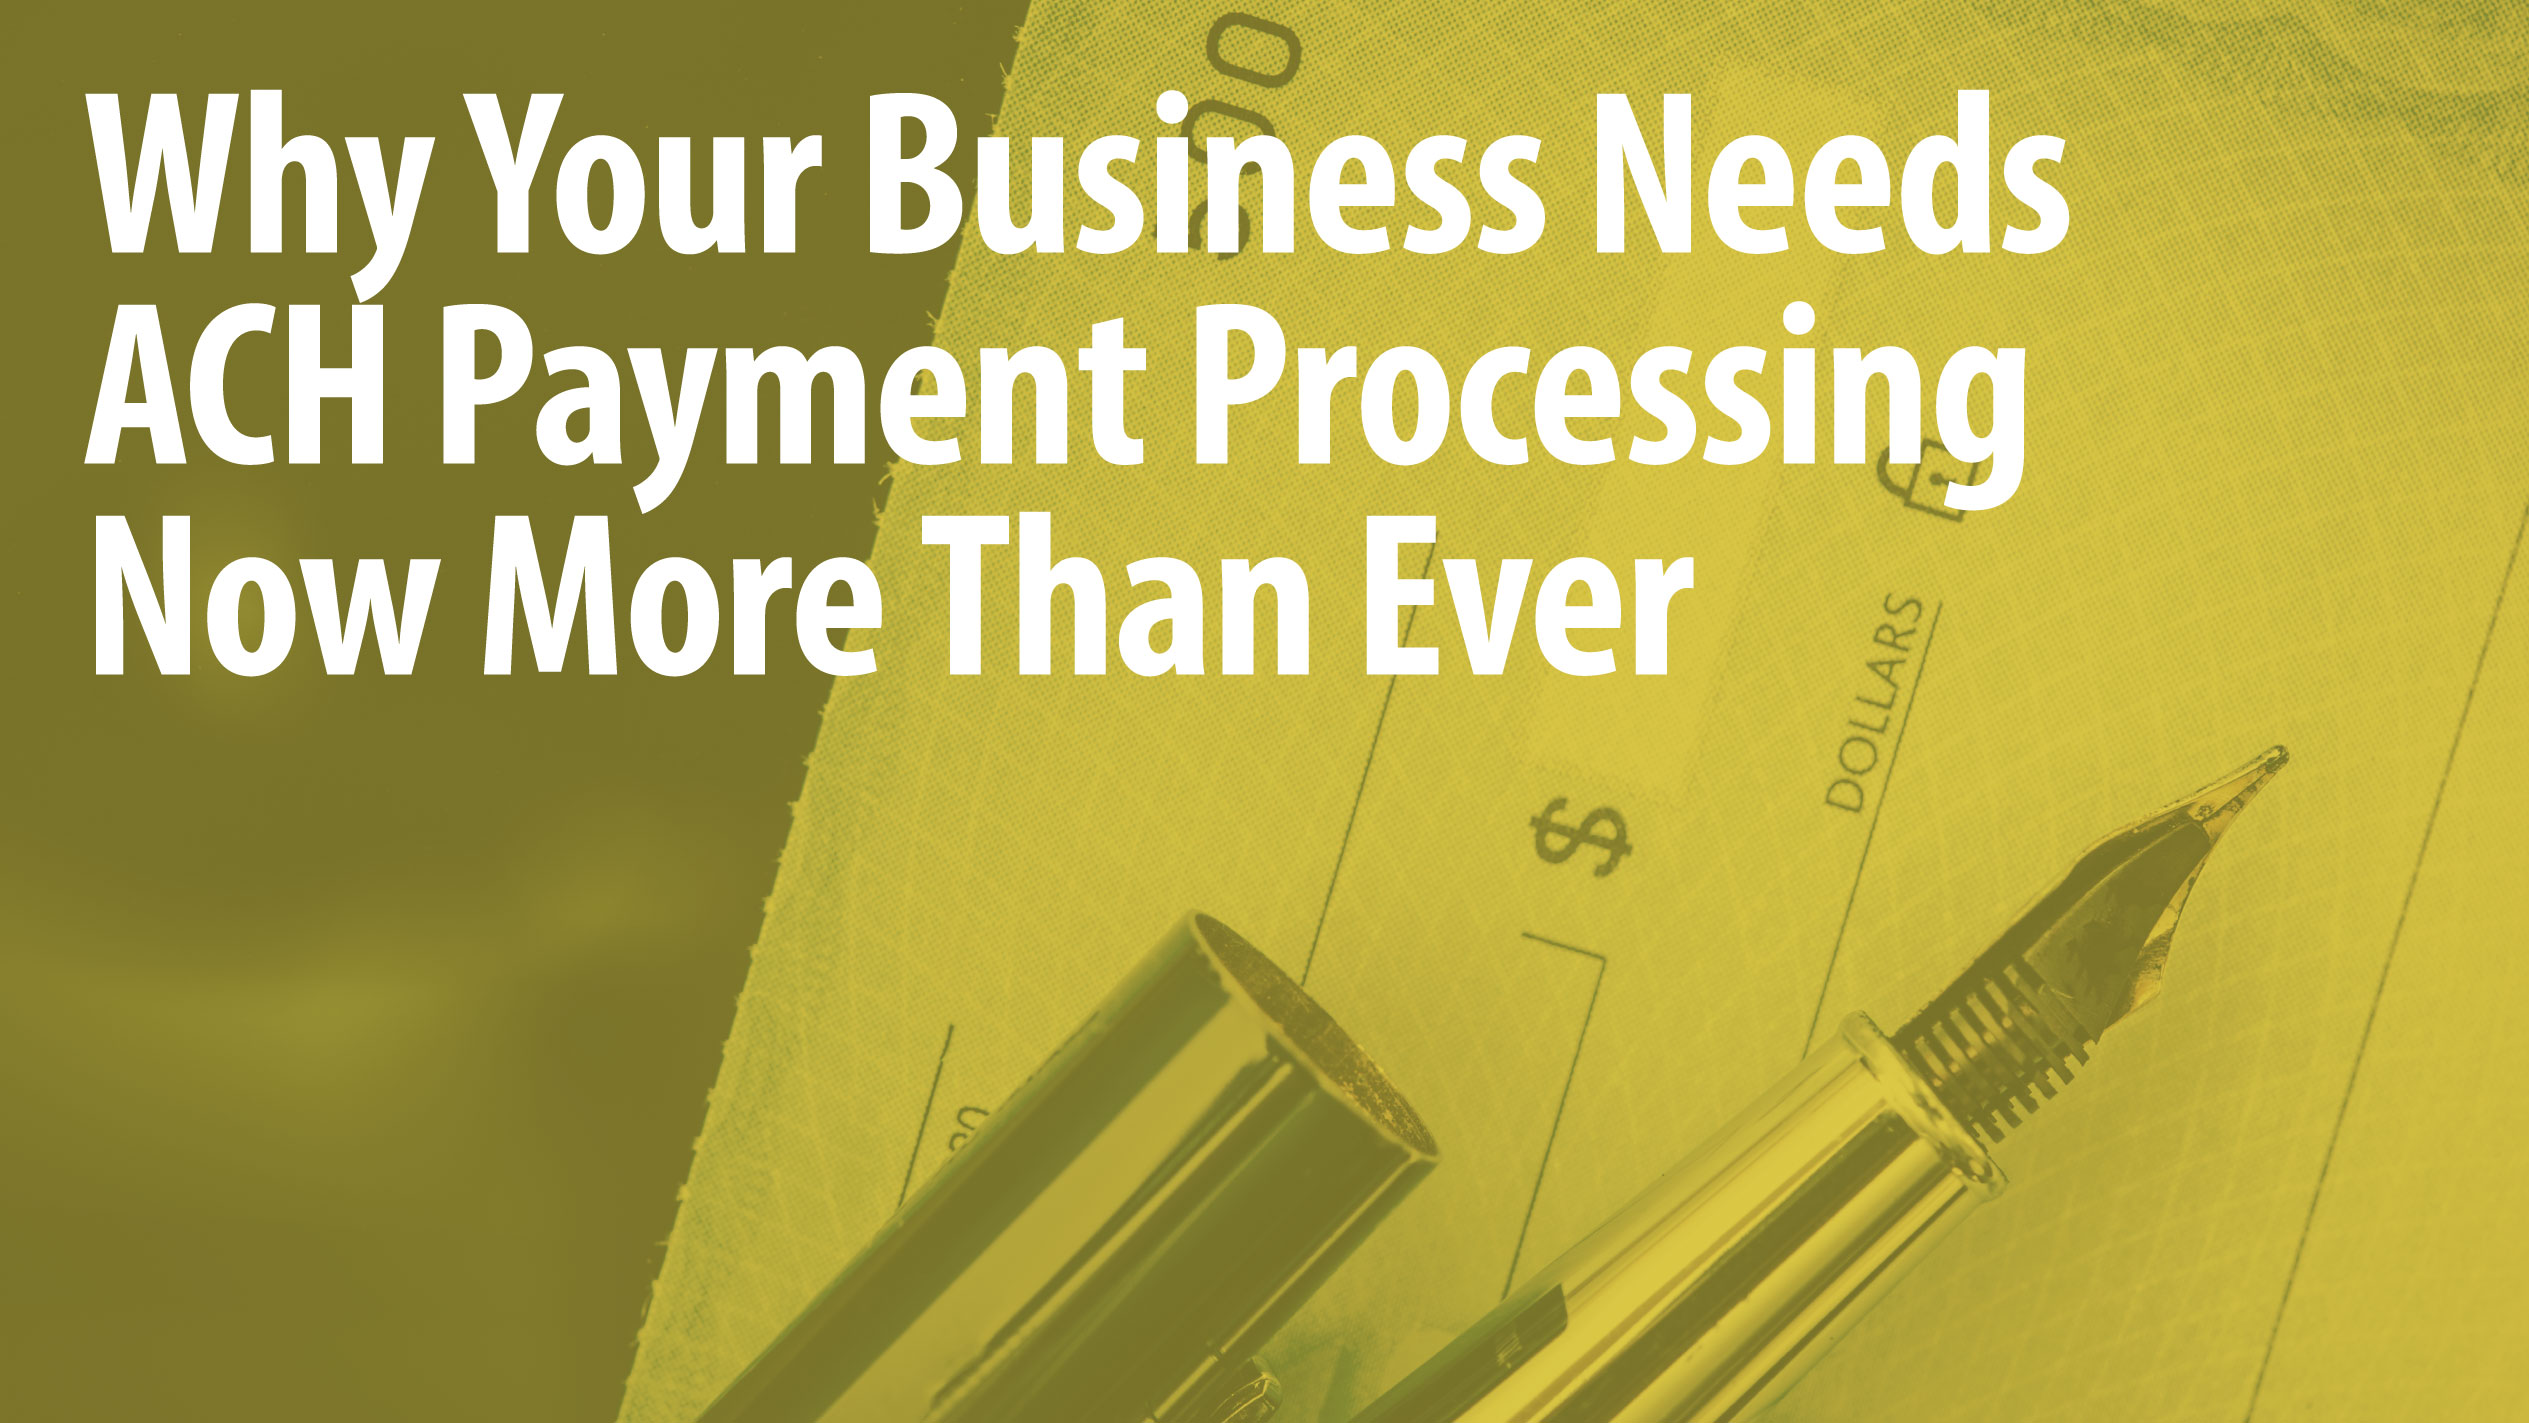 Why Your Business Needs ACH Payment Processing Now More Than Ever